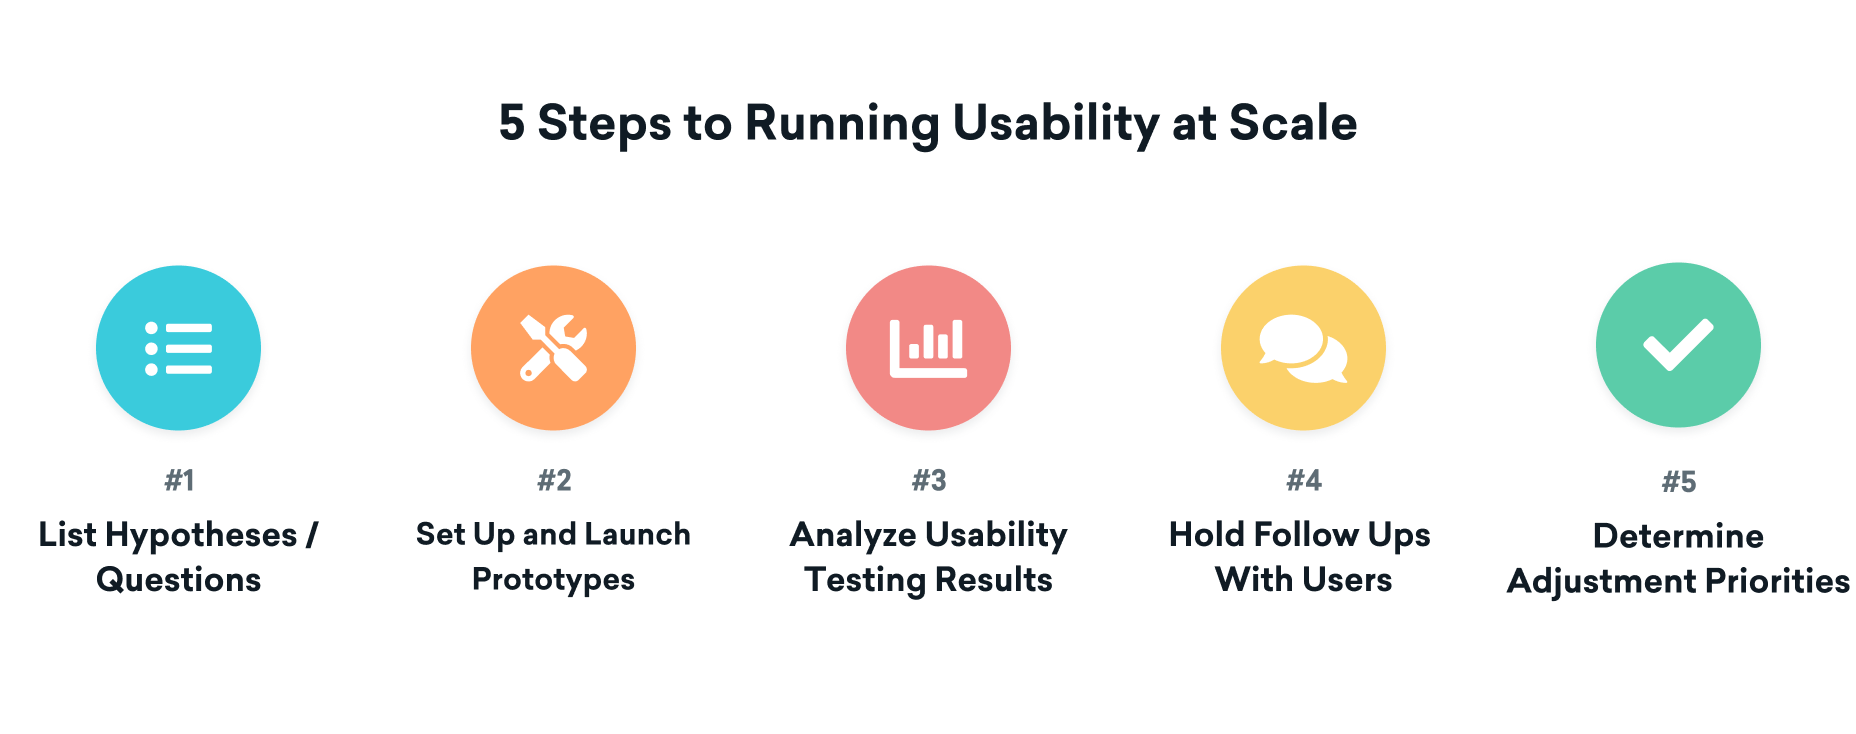 graphic - 5 steps for using usability at scale